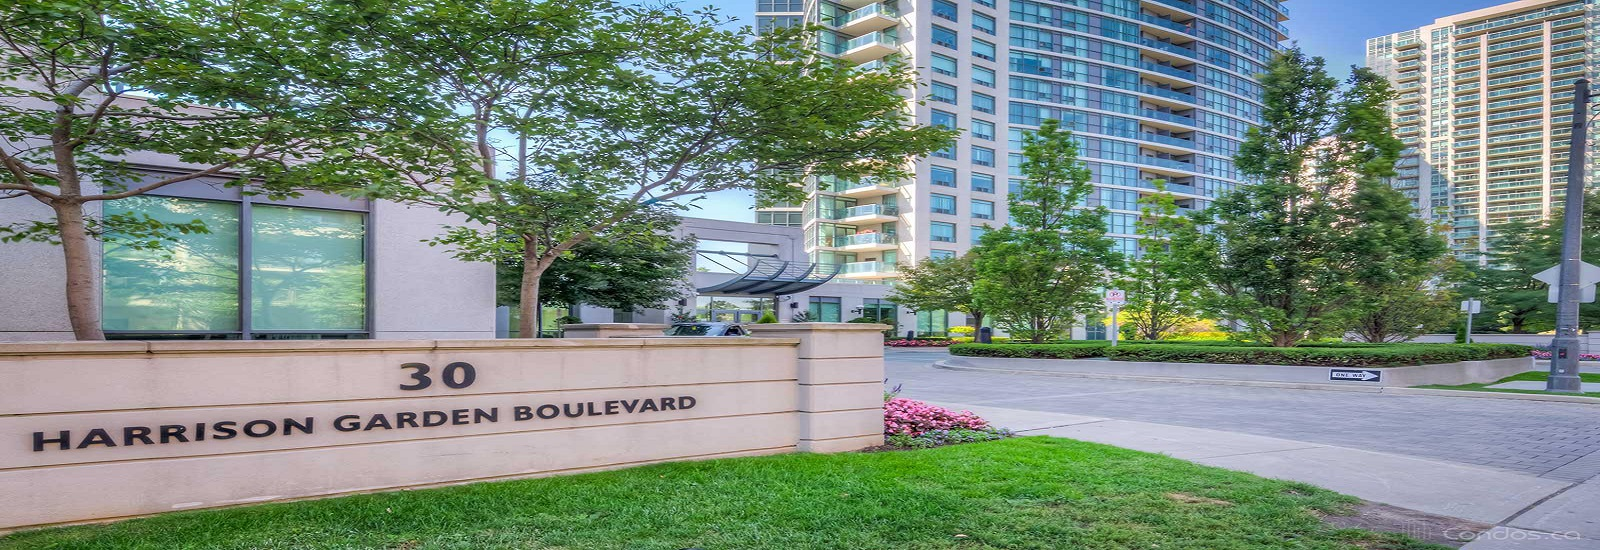 30 Harrison Garden Blvd Condos For Sale